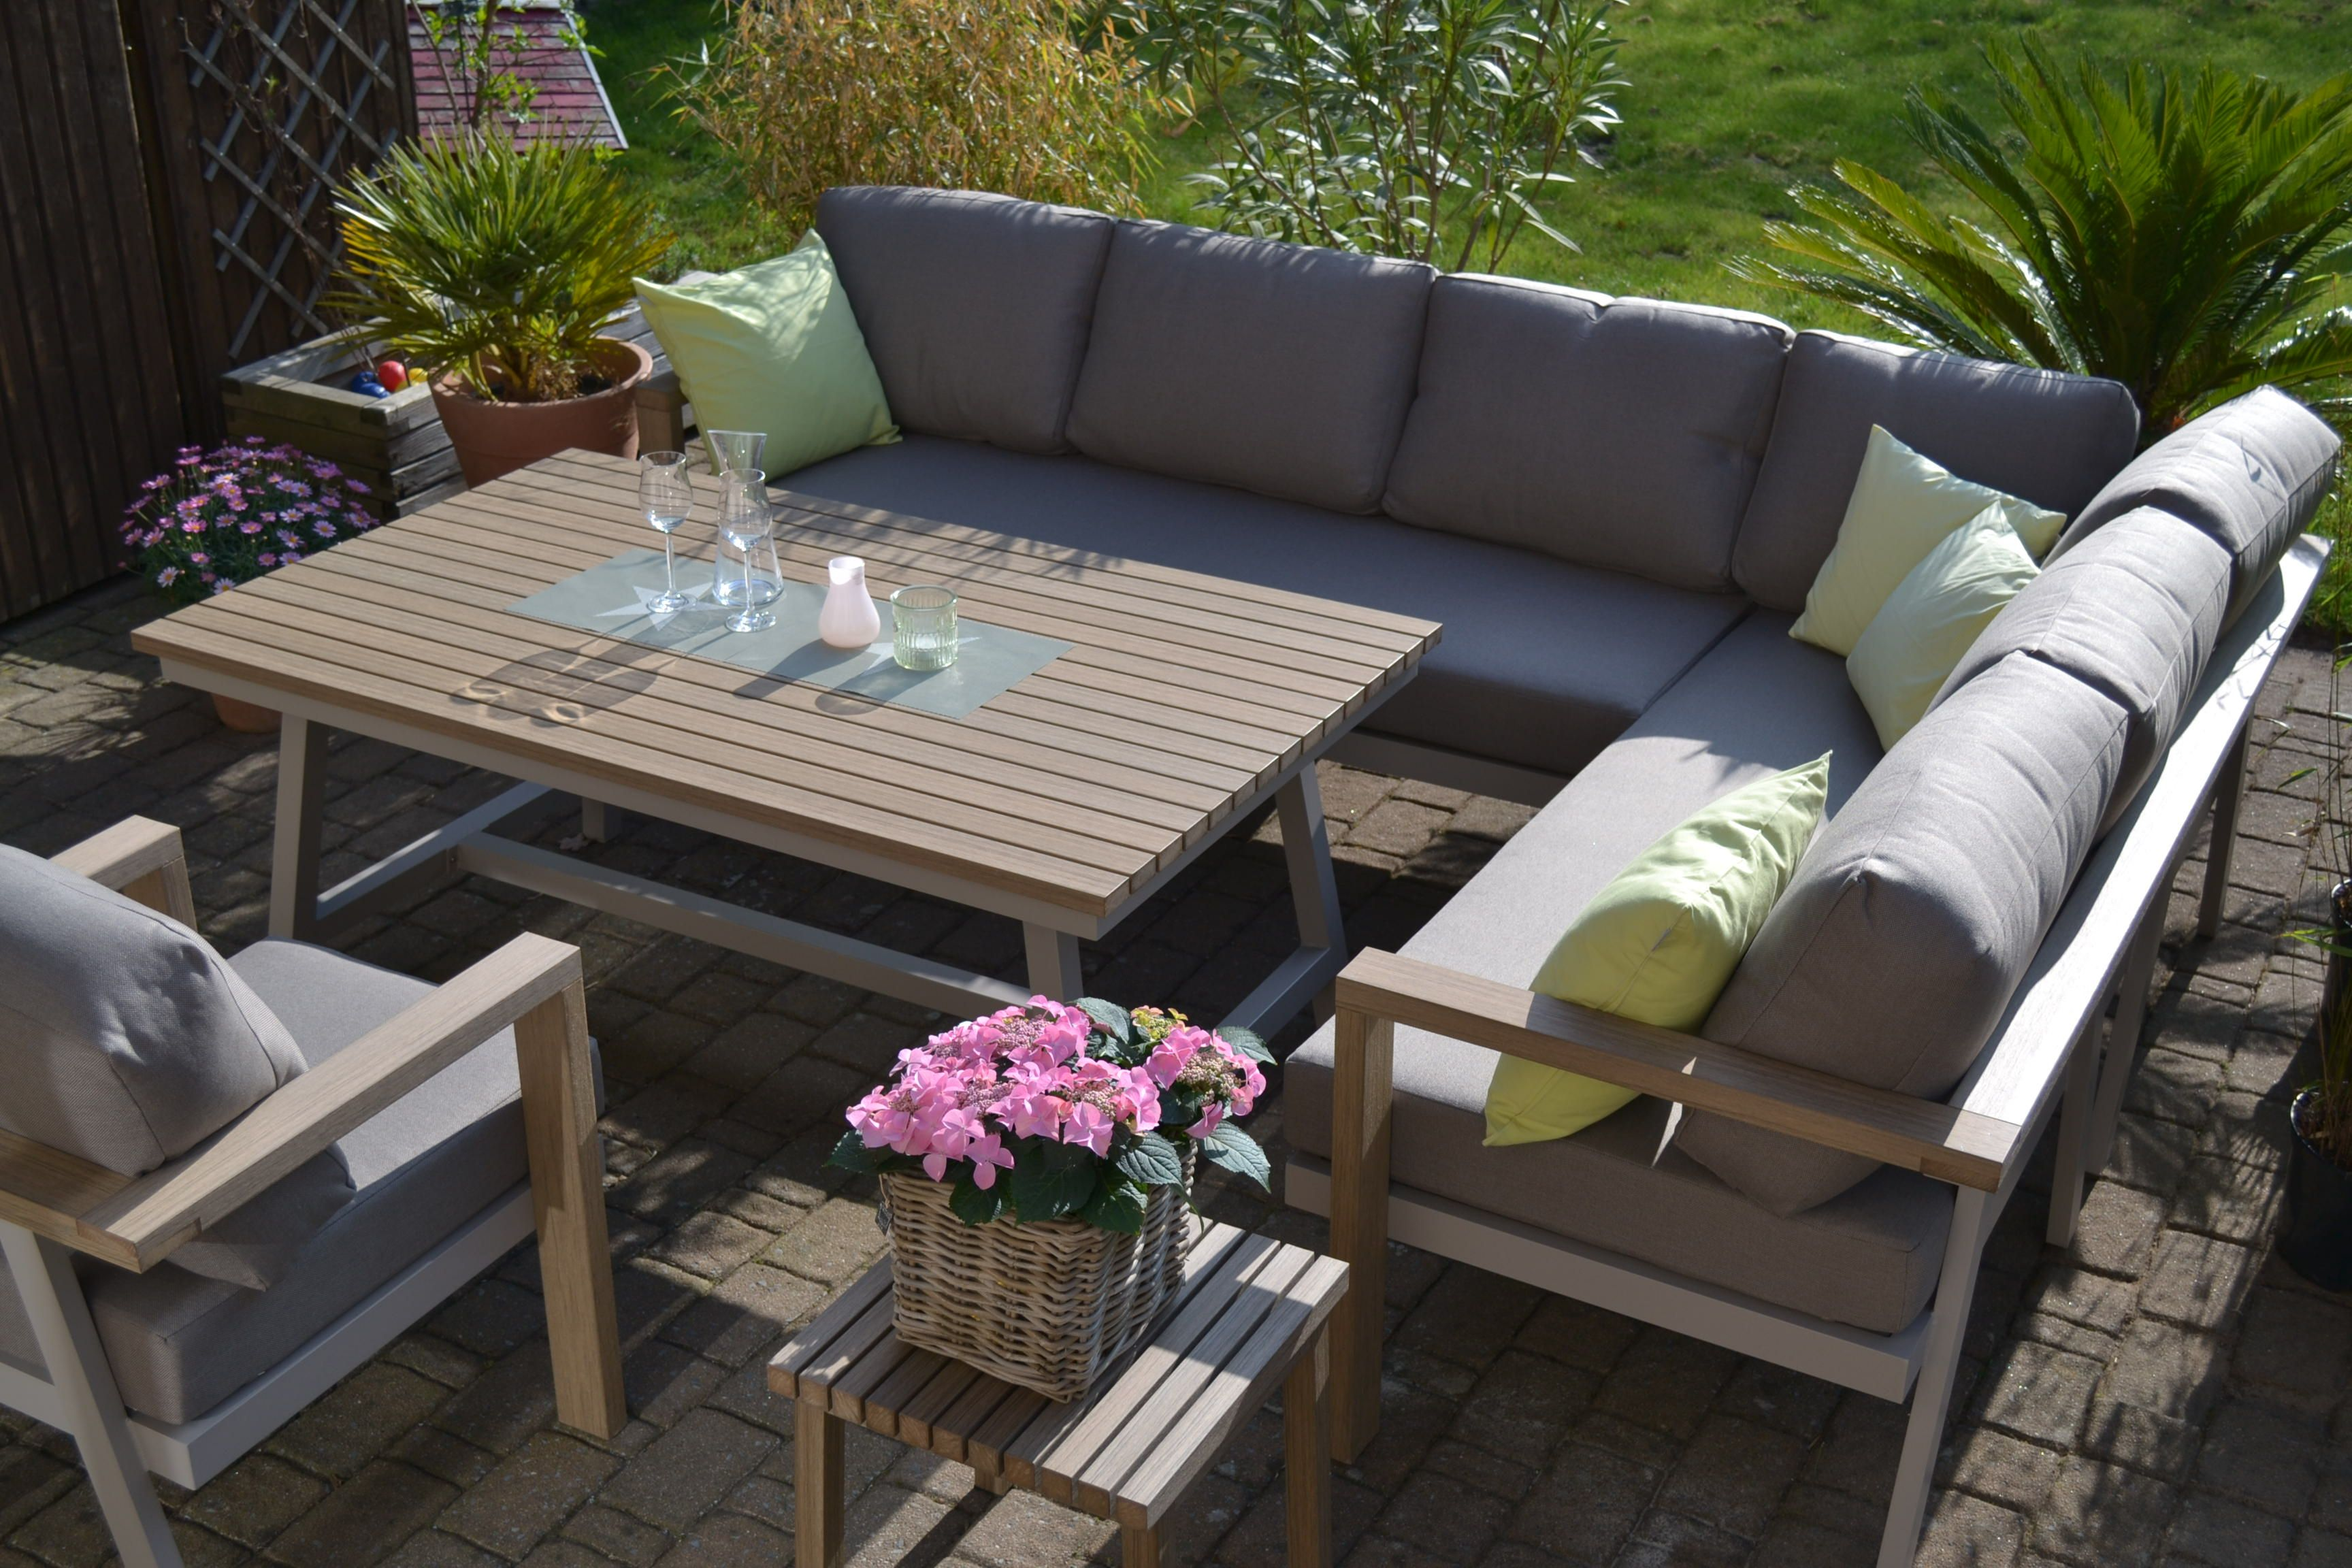 Loungemöbel Holz Outdoor Enviro Wood Ecklounge Sessel Tisch Mailand In 2020 ...